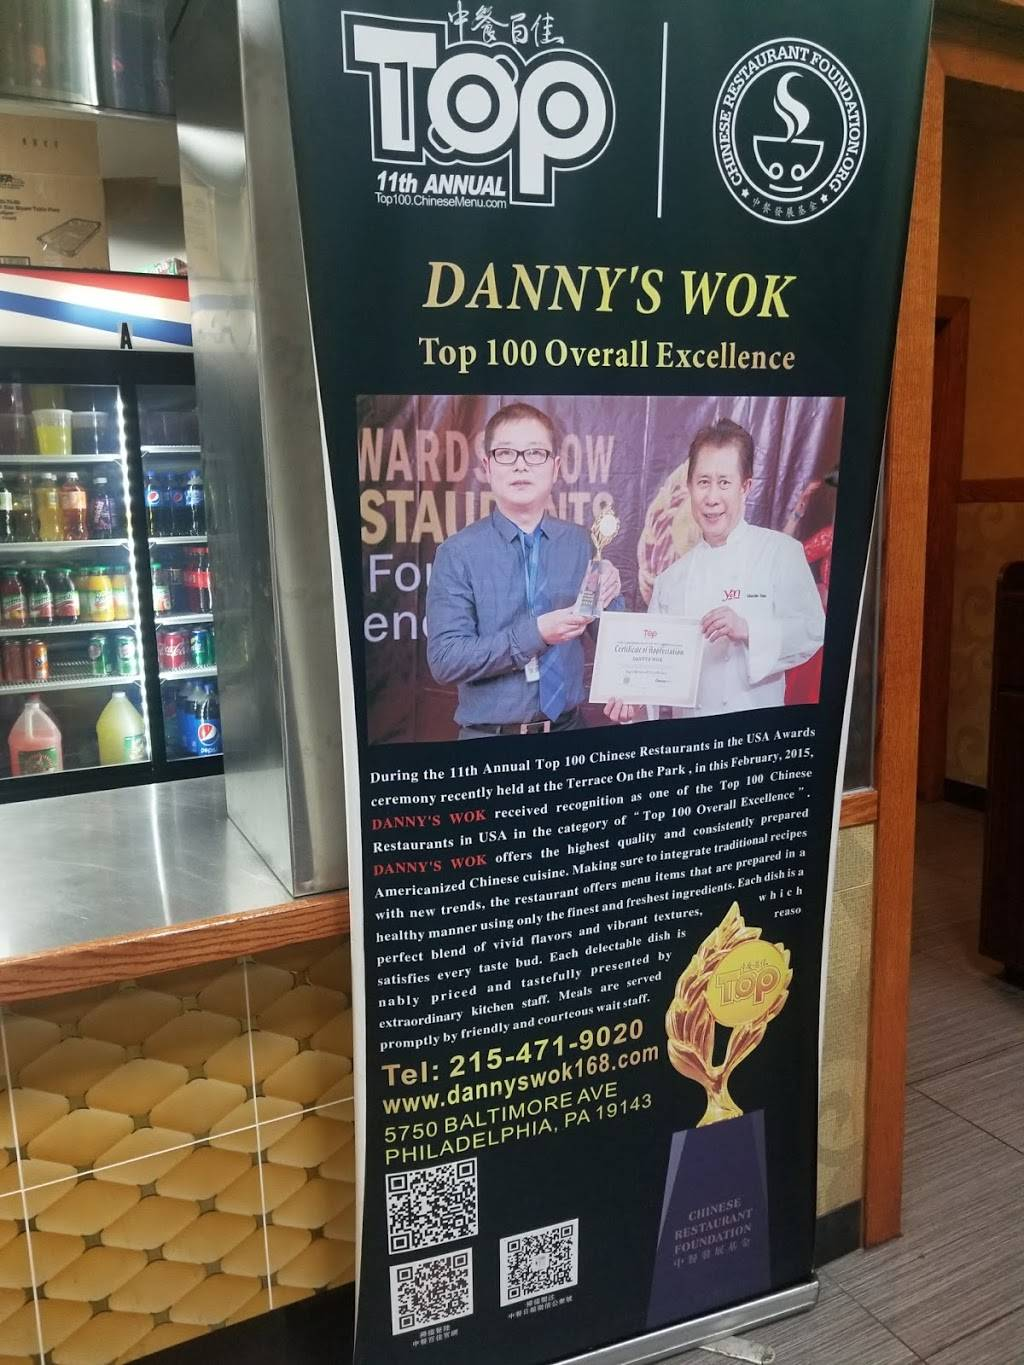 Dannys Wok | restaurant | 4322 N Broad St, Philadelphia, PA 19140, USA | 2673316699 OR +1 267-331-6699